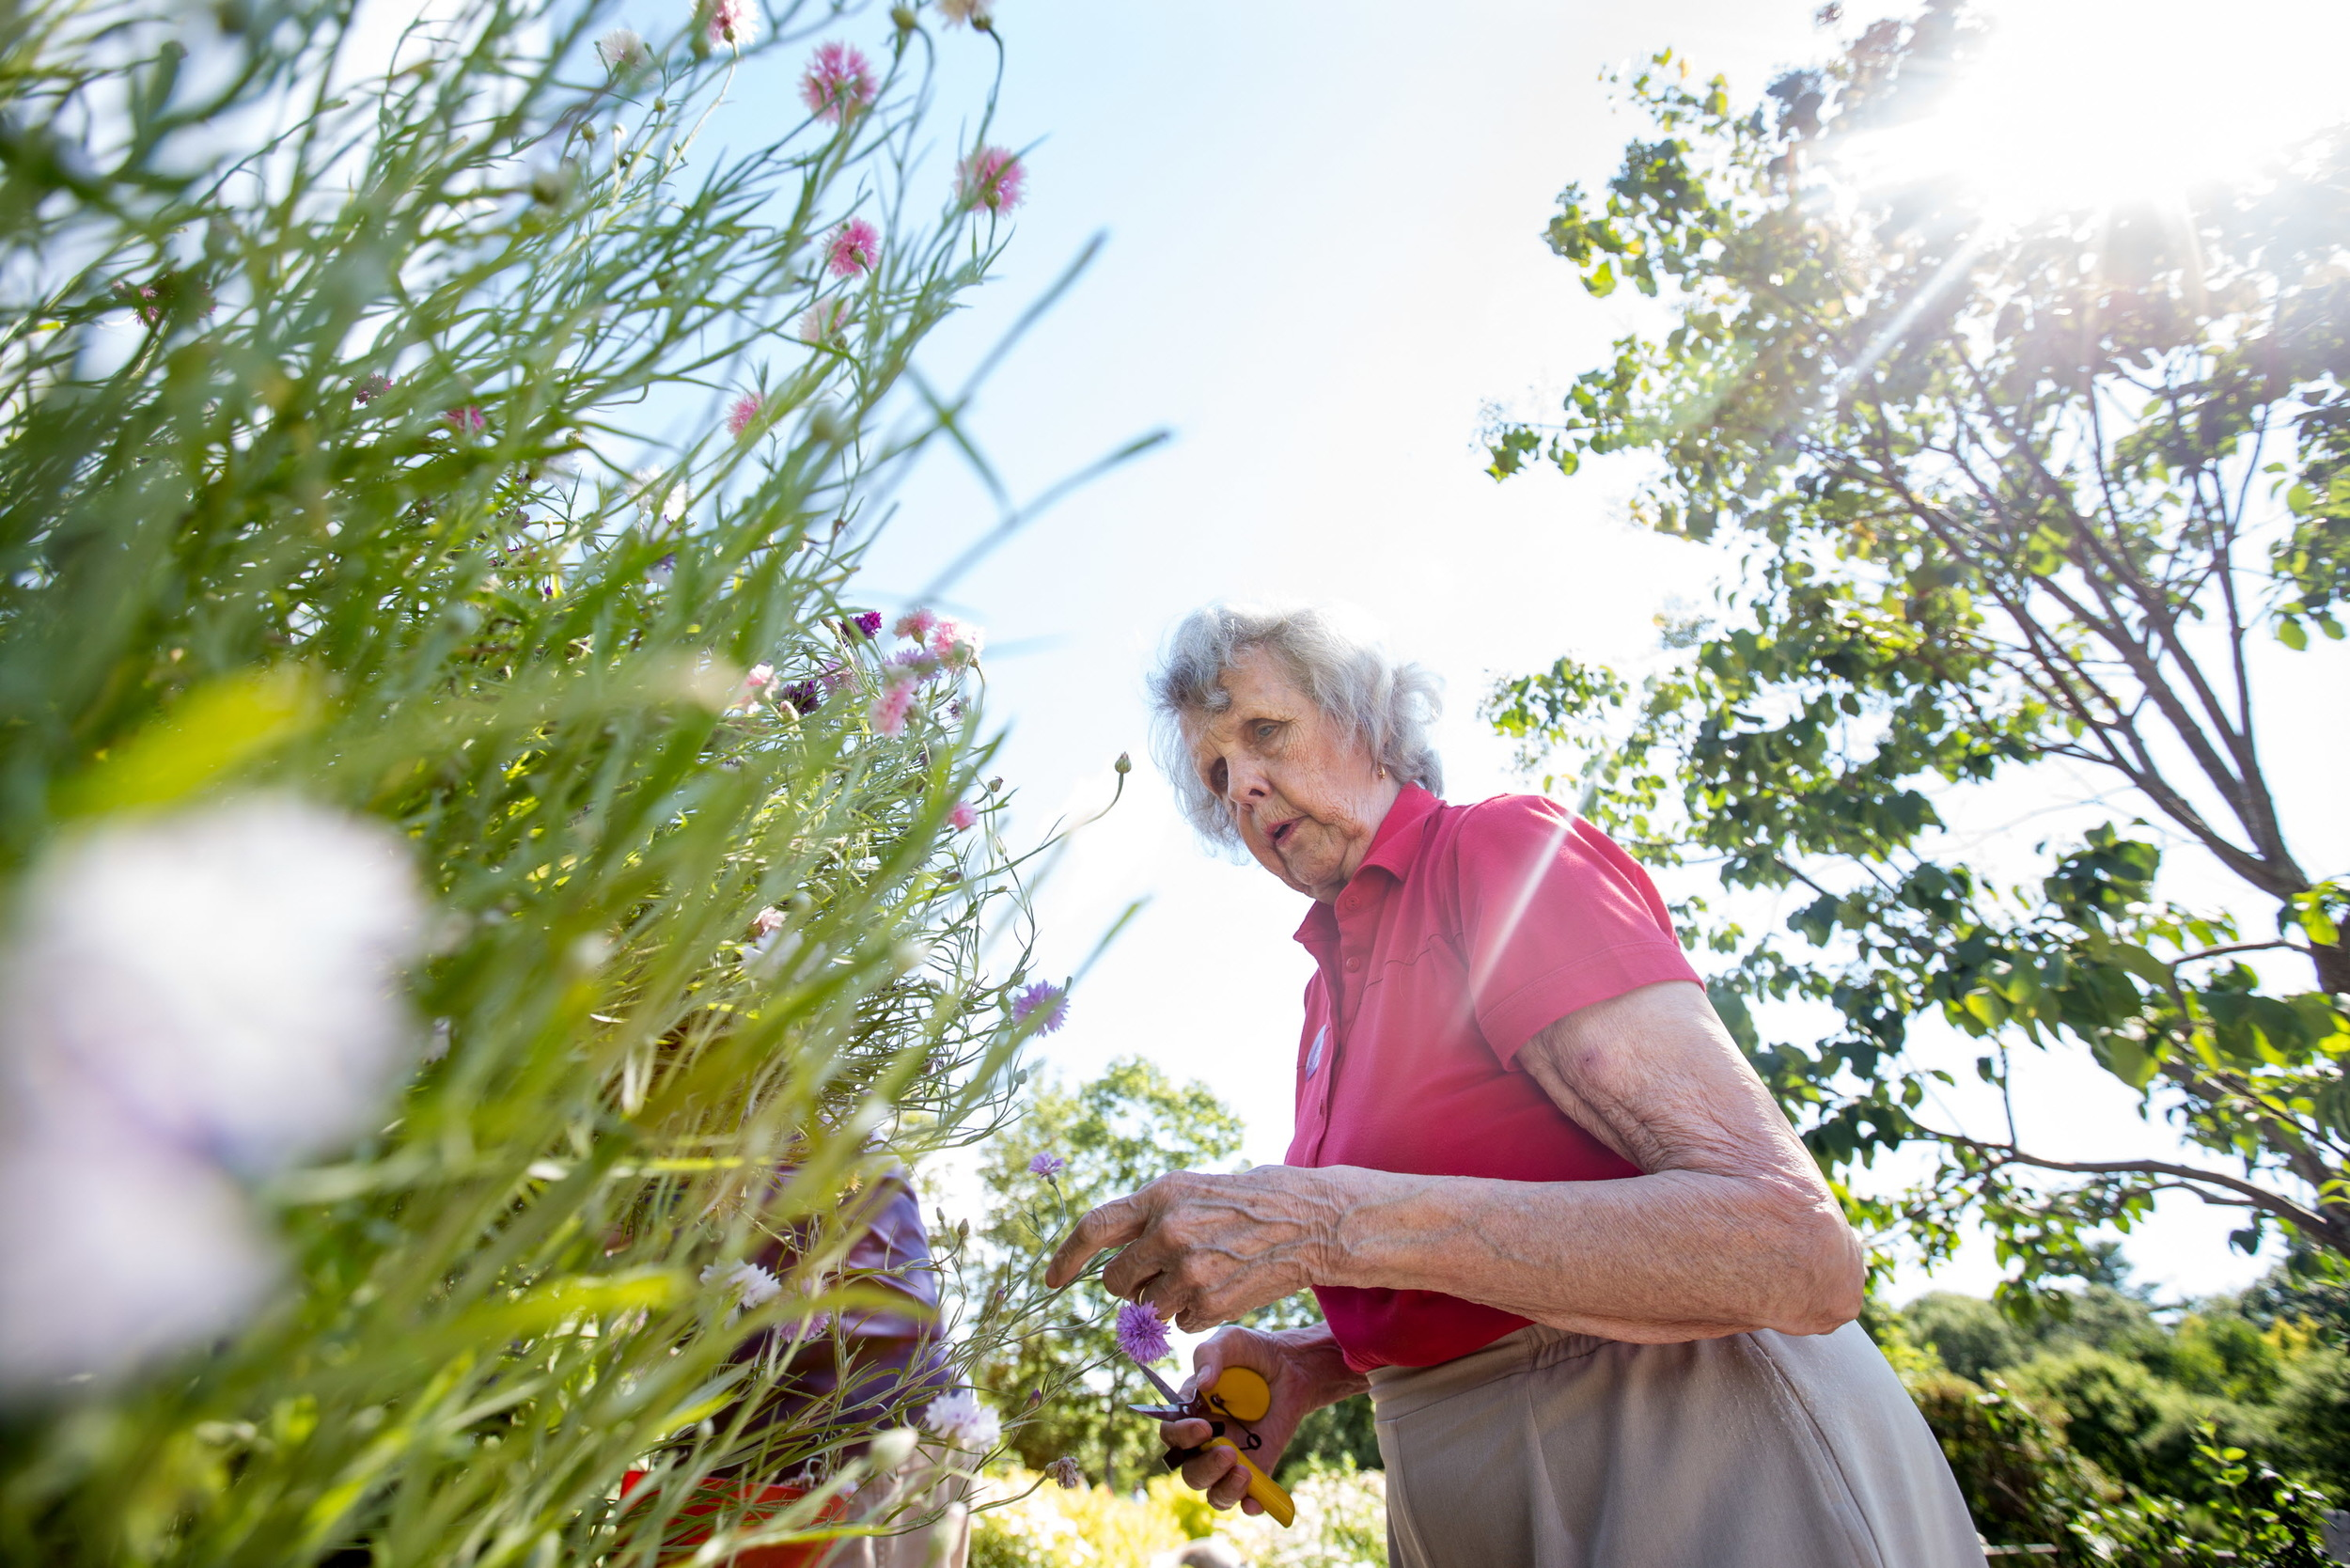 BOOTHBAY HARBOR, MAINE -- 08/03/2016 --Mollie Moore, 82, of Southport Island feels for dead flowers on a plant at the Coastal Maine Botanical Gardens in Boothbay Harbor during a VIP session of the Therapeutic Horticulture program for people with visual impairments. Moore is fully blind, having lost both eyes to meningitis many years ago, and is learning to garden through touch. (Micky Bedell   BDN)